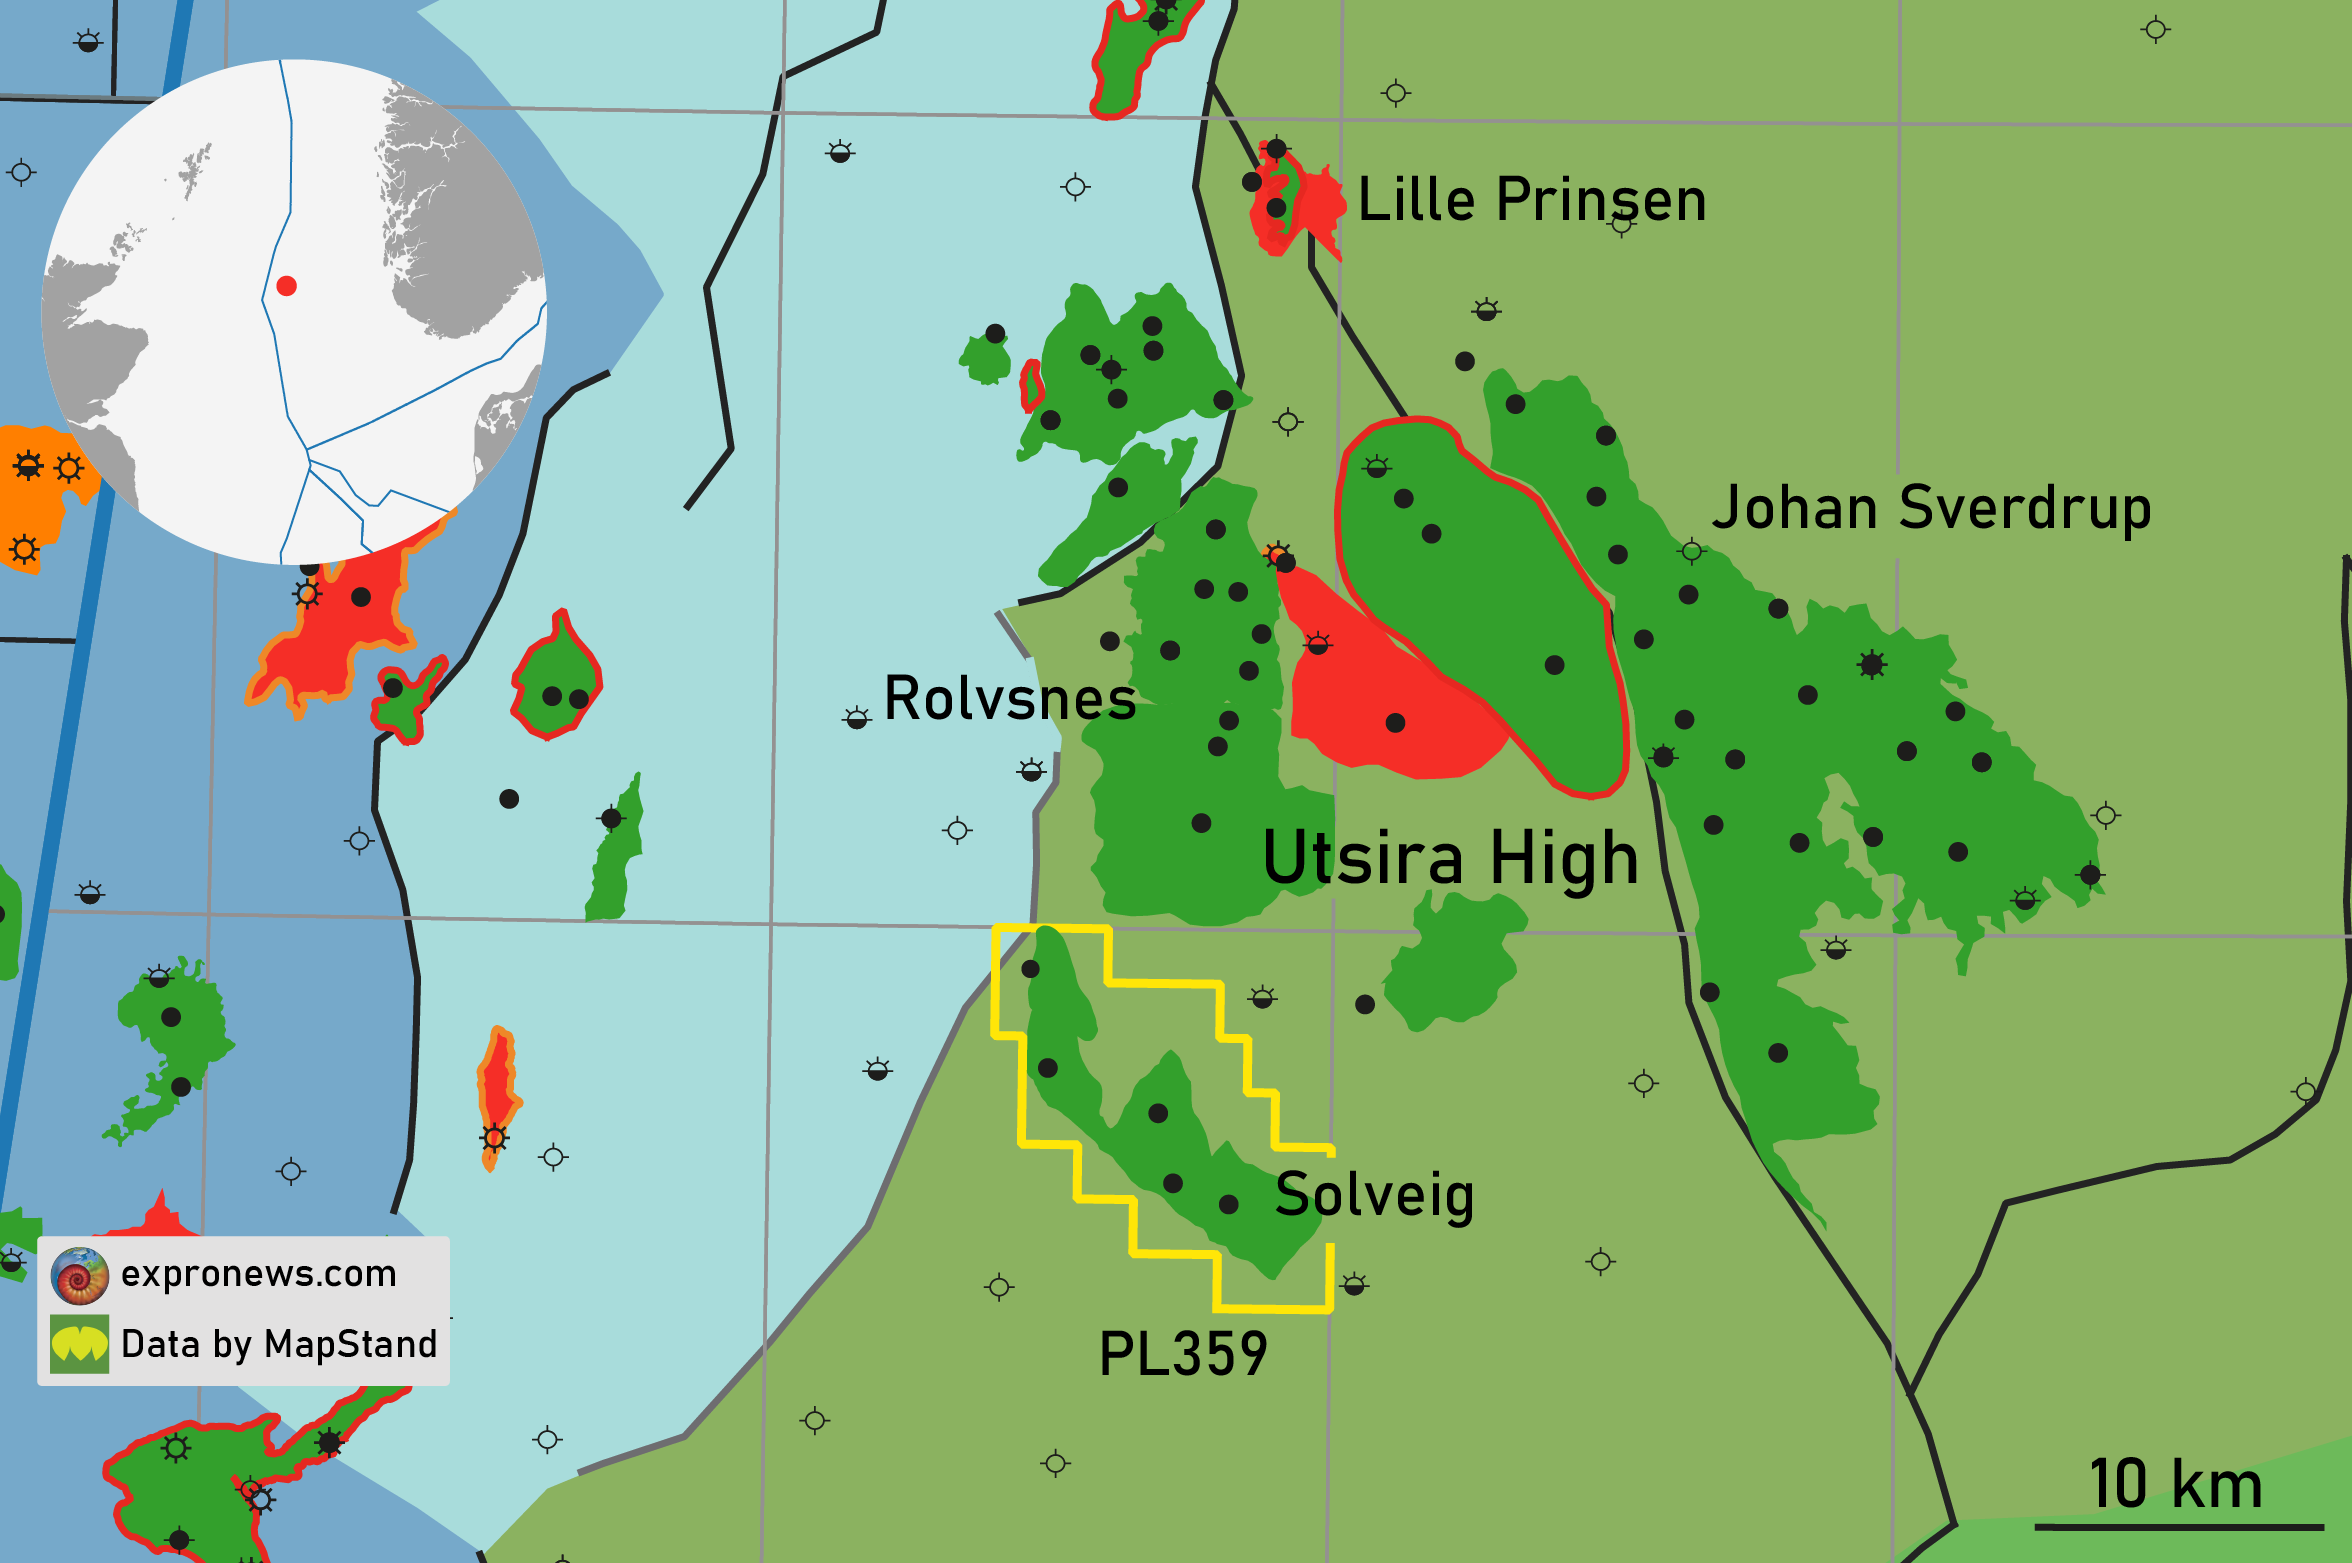 Another Utsira High discovery seeing first oil soon